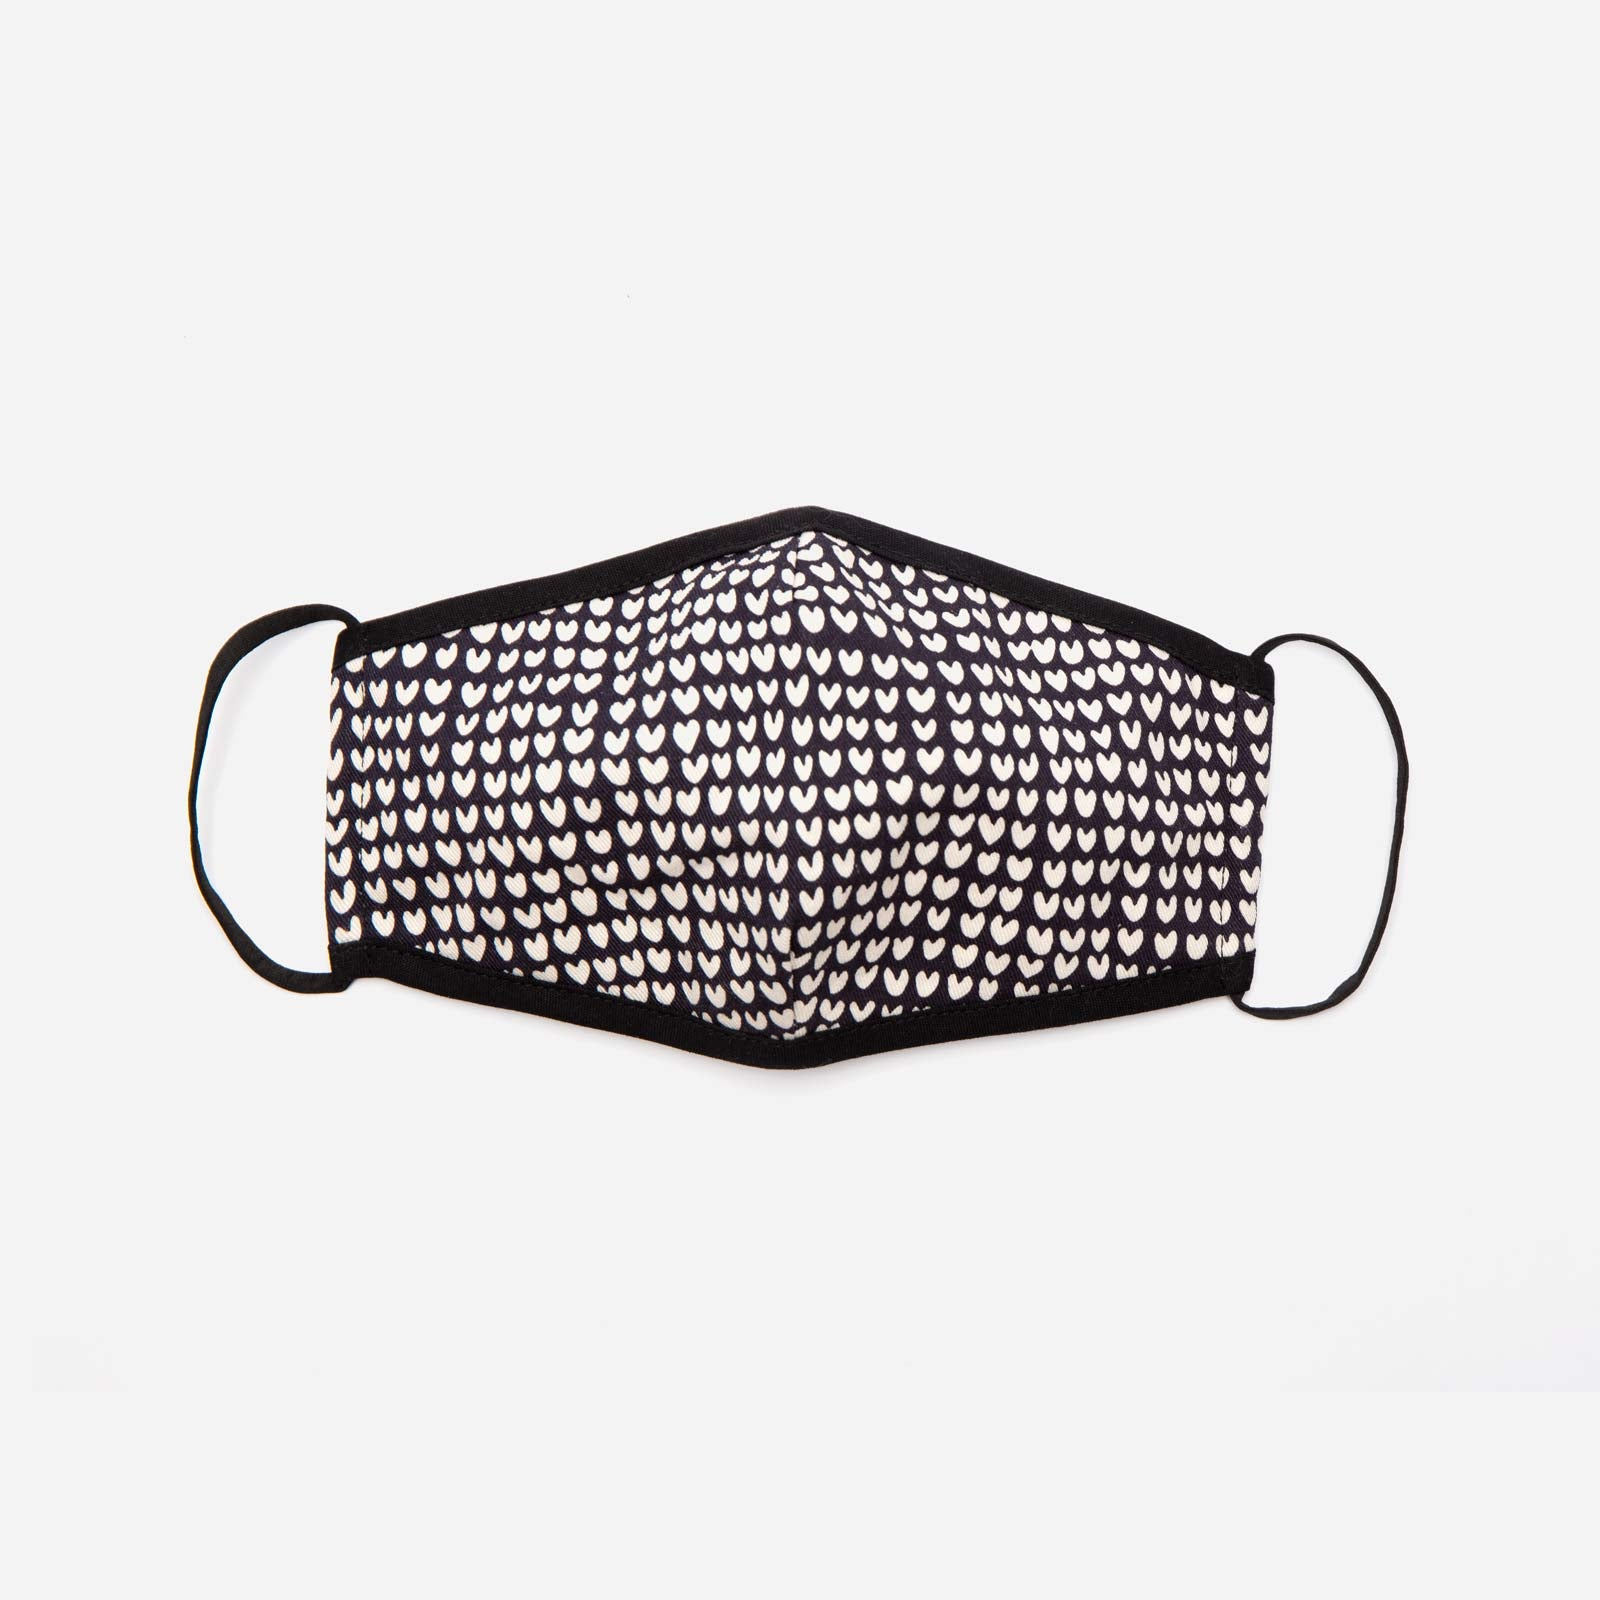 Fitted Mask Heart Print Black Oyster - Frances Valentine